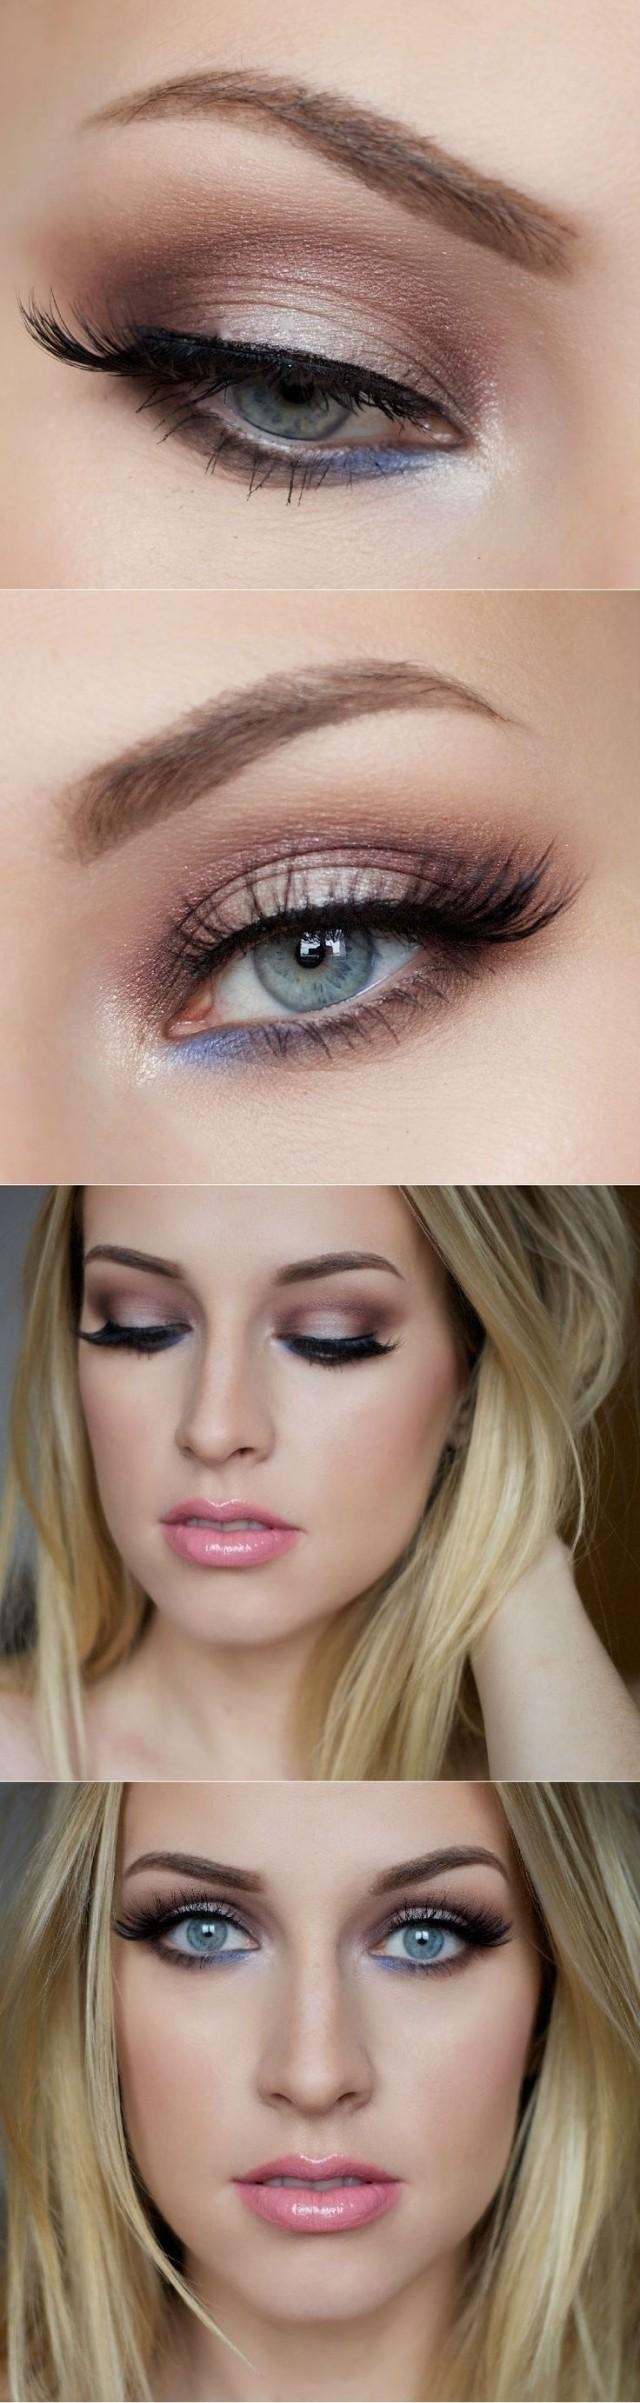 Make-Up - Makeup Tips For Blue Eyes And Fair Skin #2535850 - Weddbook with regard to Makeup Ideas For Blue Eyes And Fair Skin